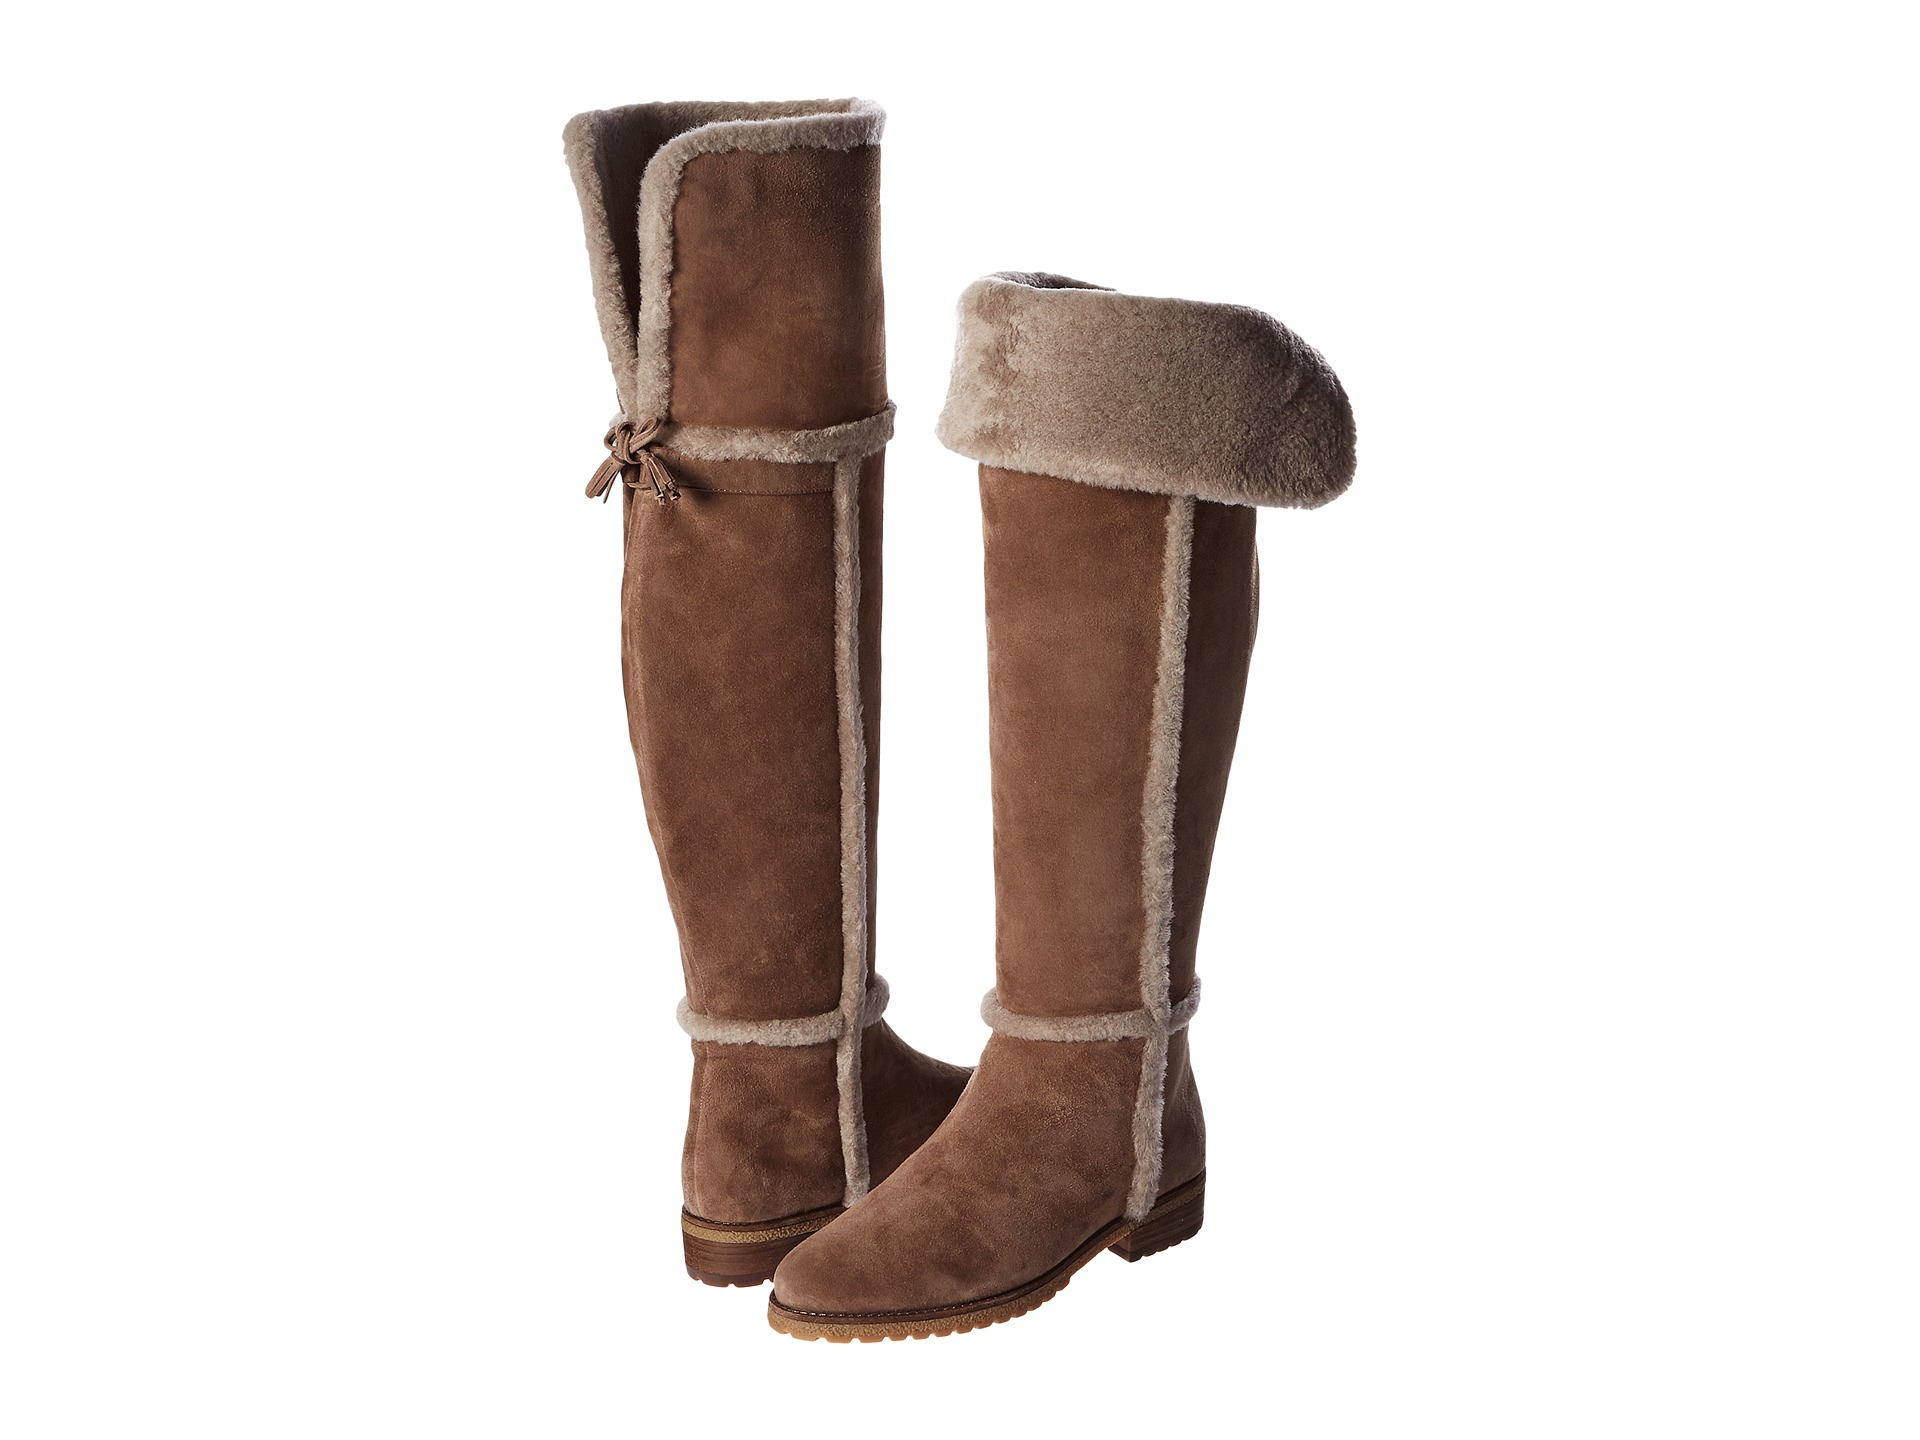 Frye Tassel Detailing Tamara Shearling Over The Knee